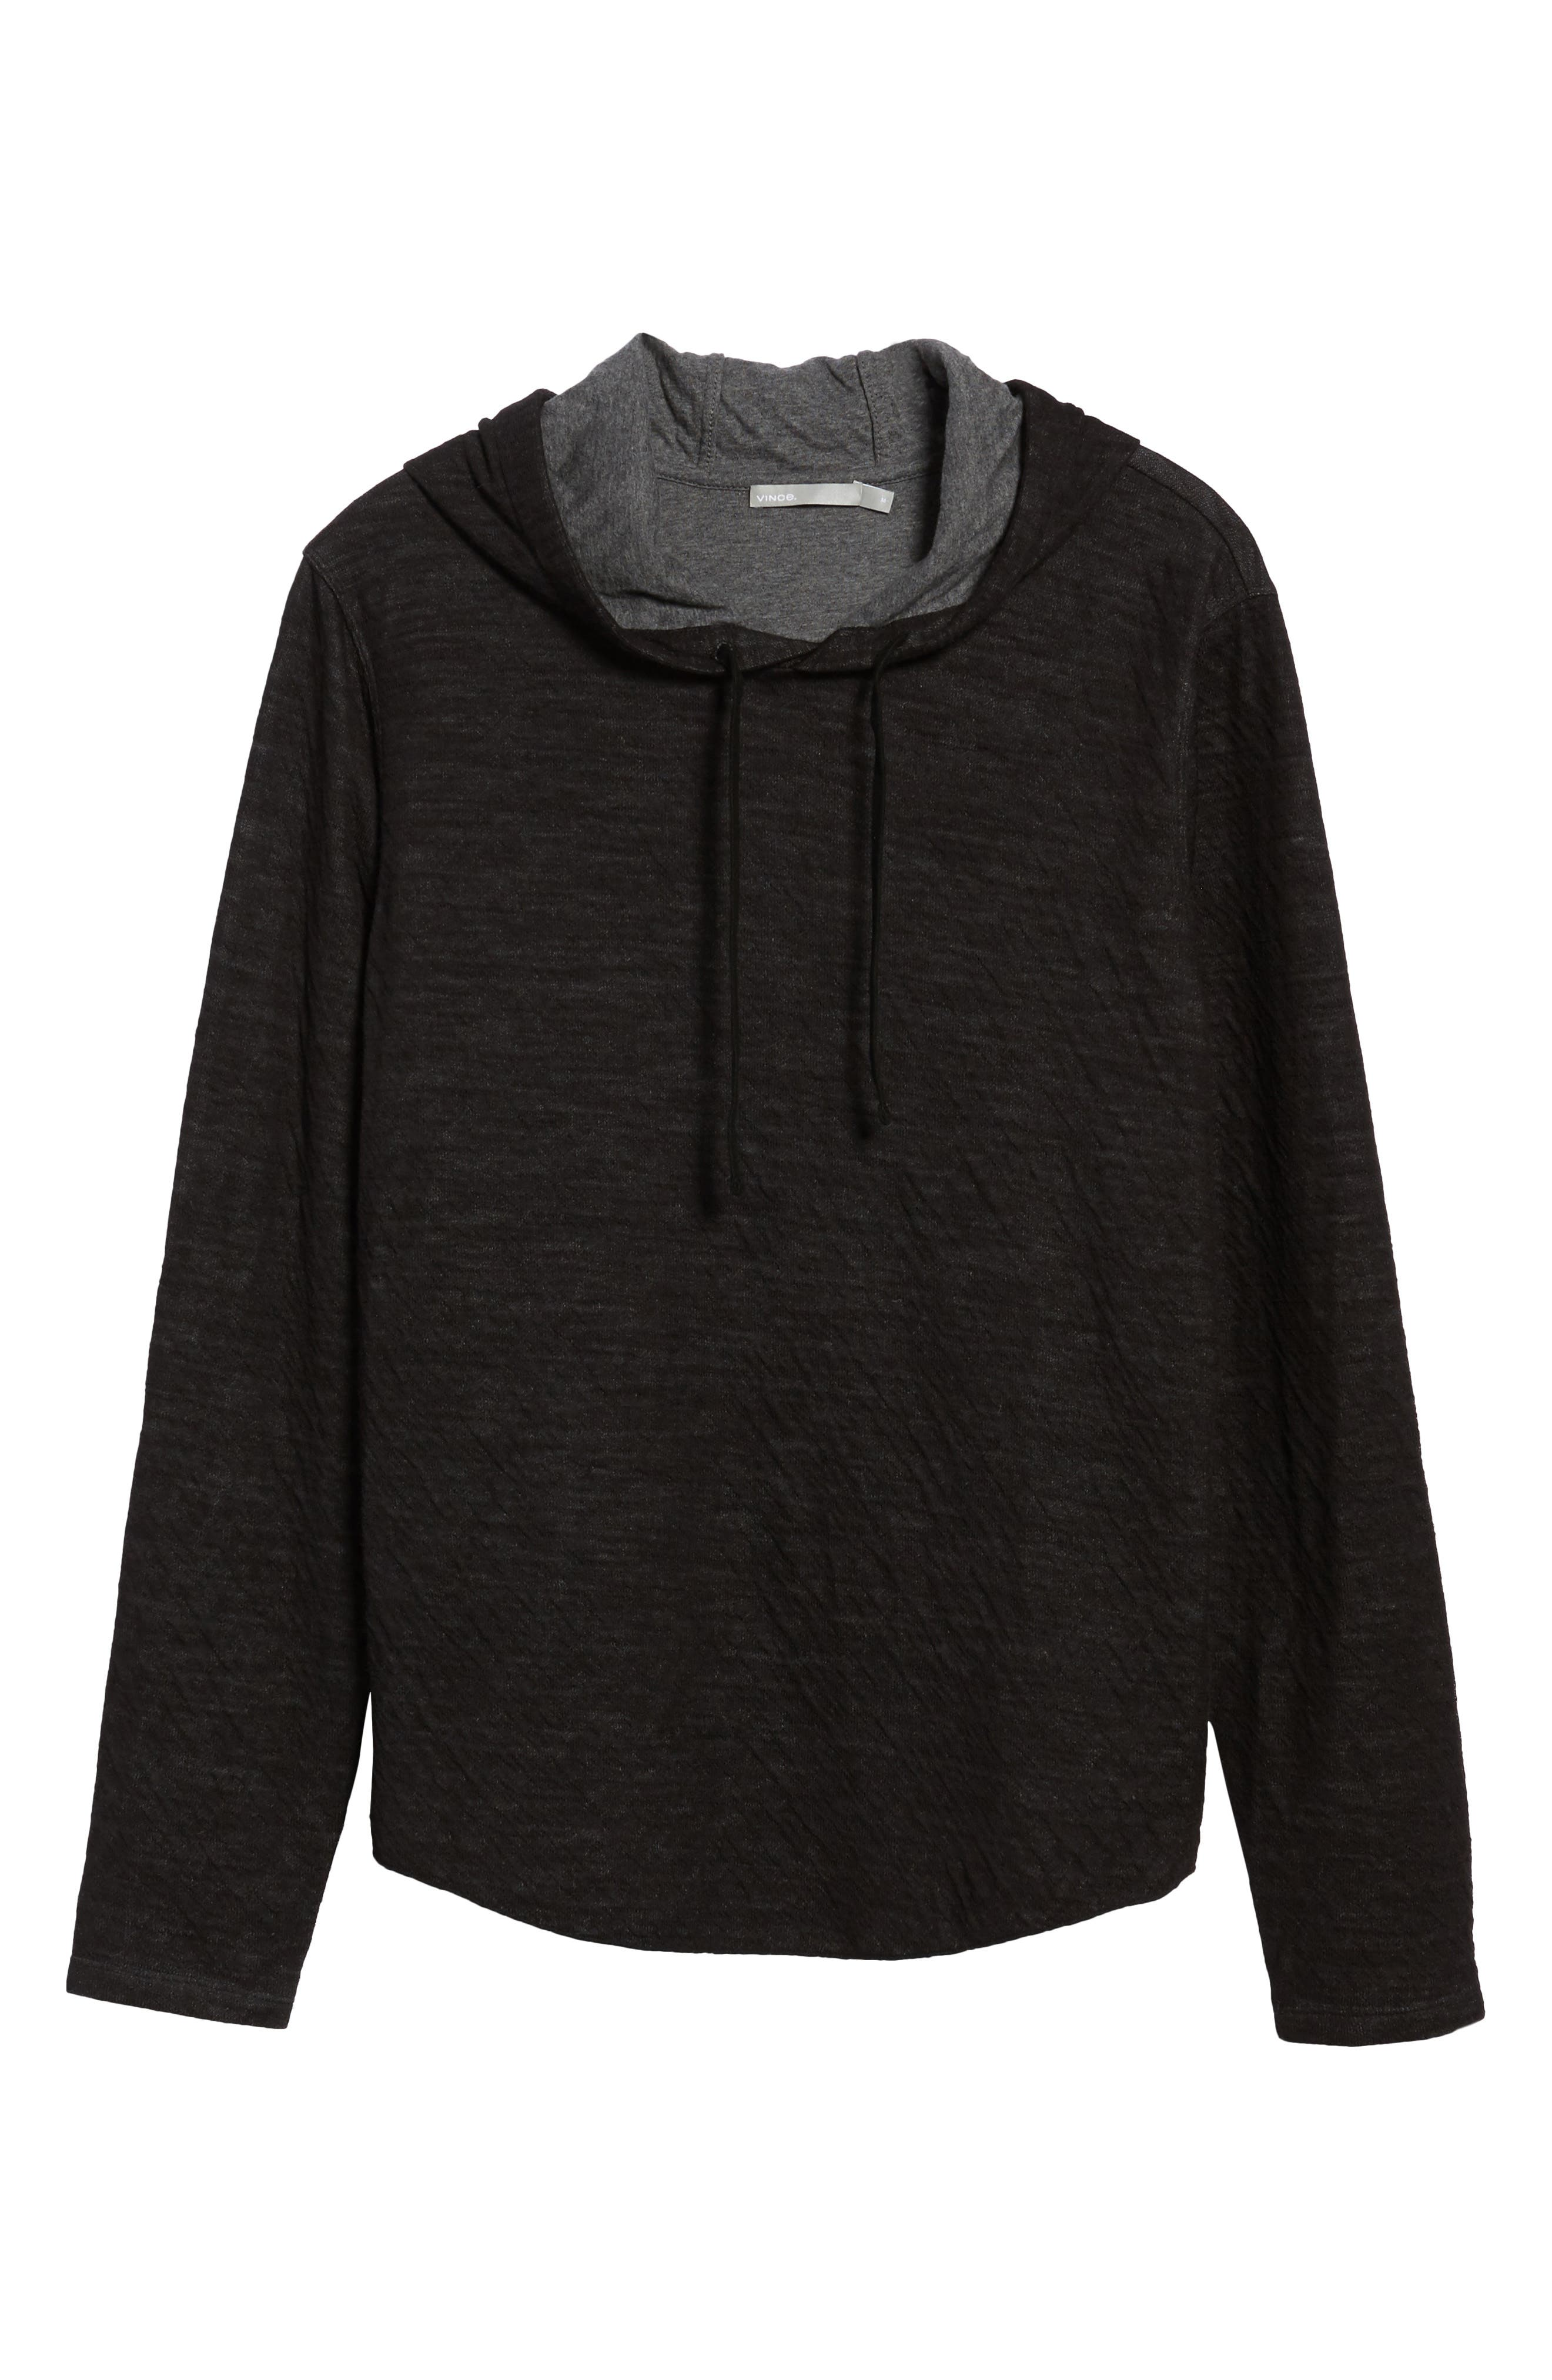 Contrast Double Knit Cotton & Wool Hoodie,                             Alternate thumbnail 6, color,                             001